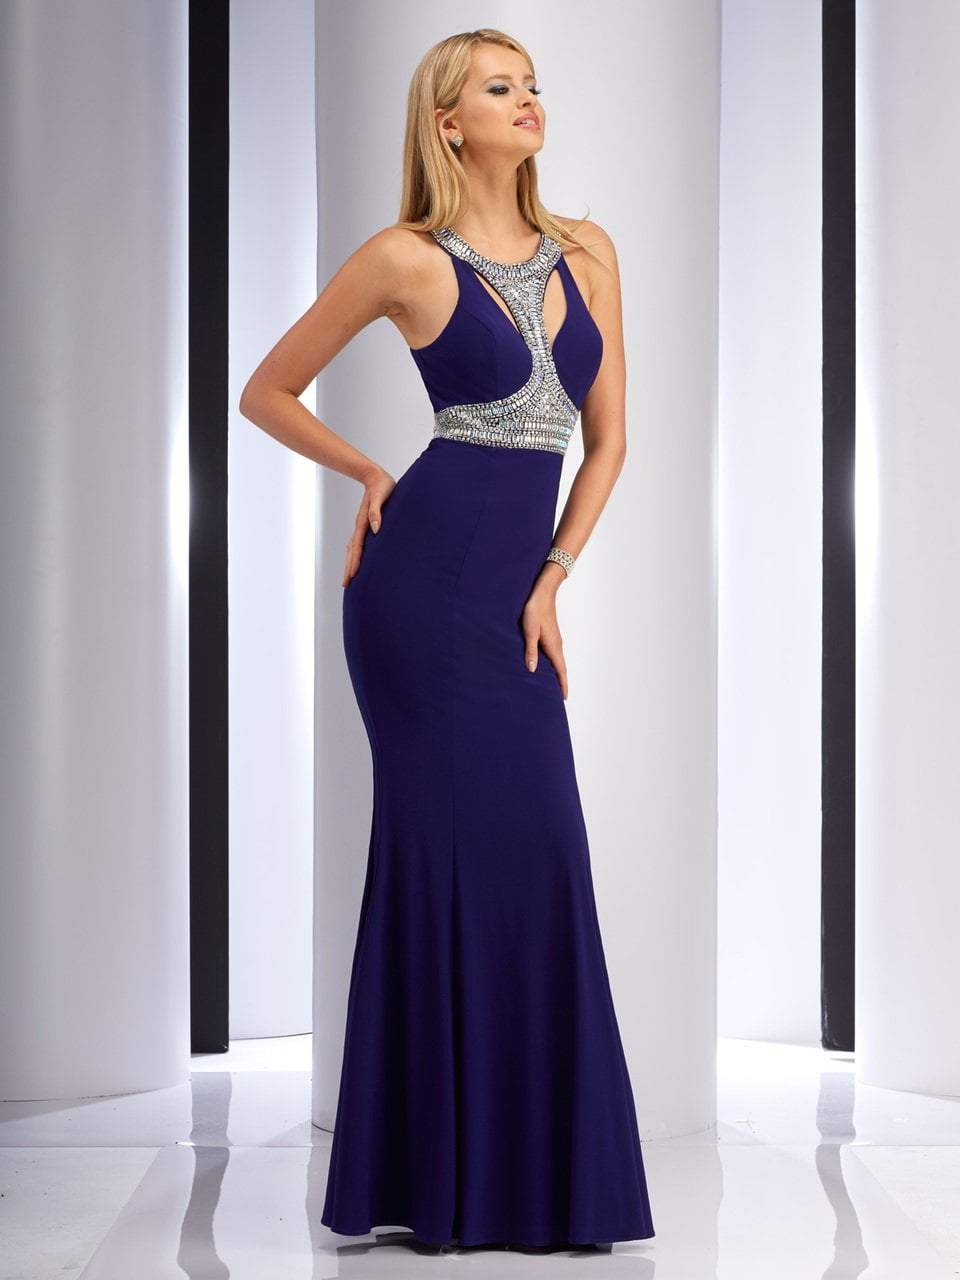 Clarisse - 2839 Bedazzled Halter Sheath Dress in Blue